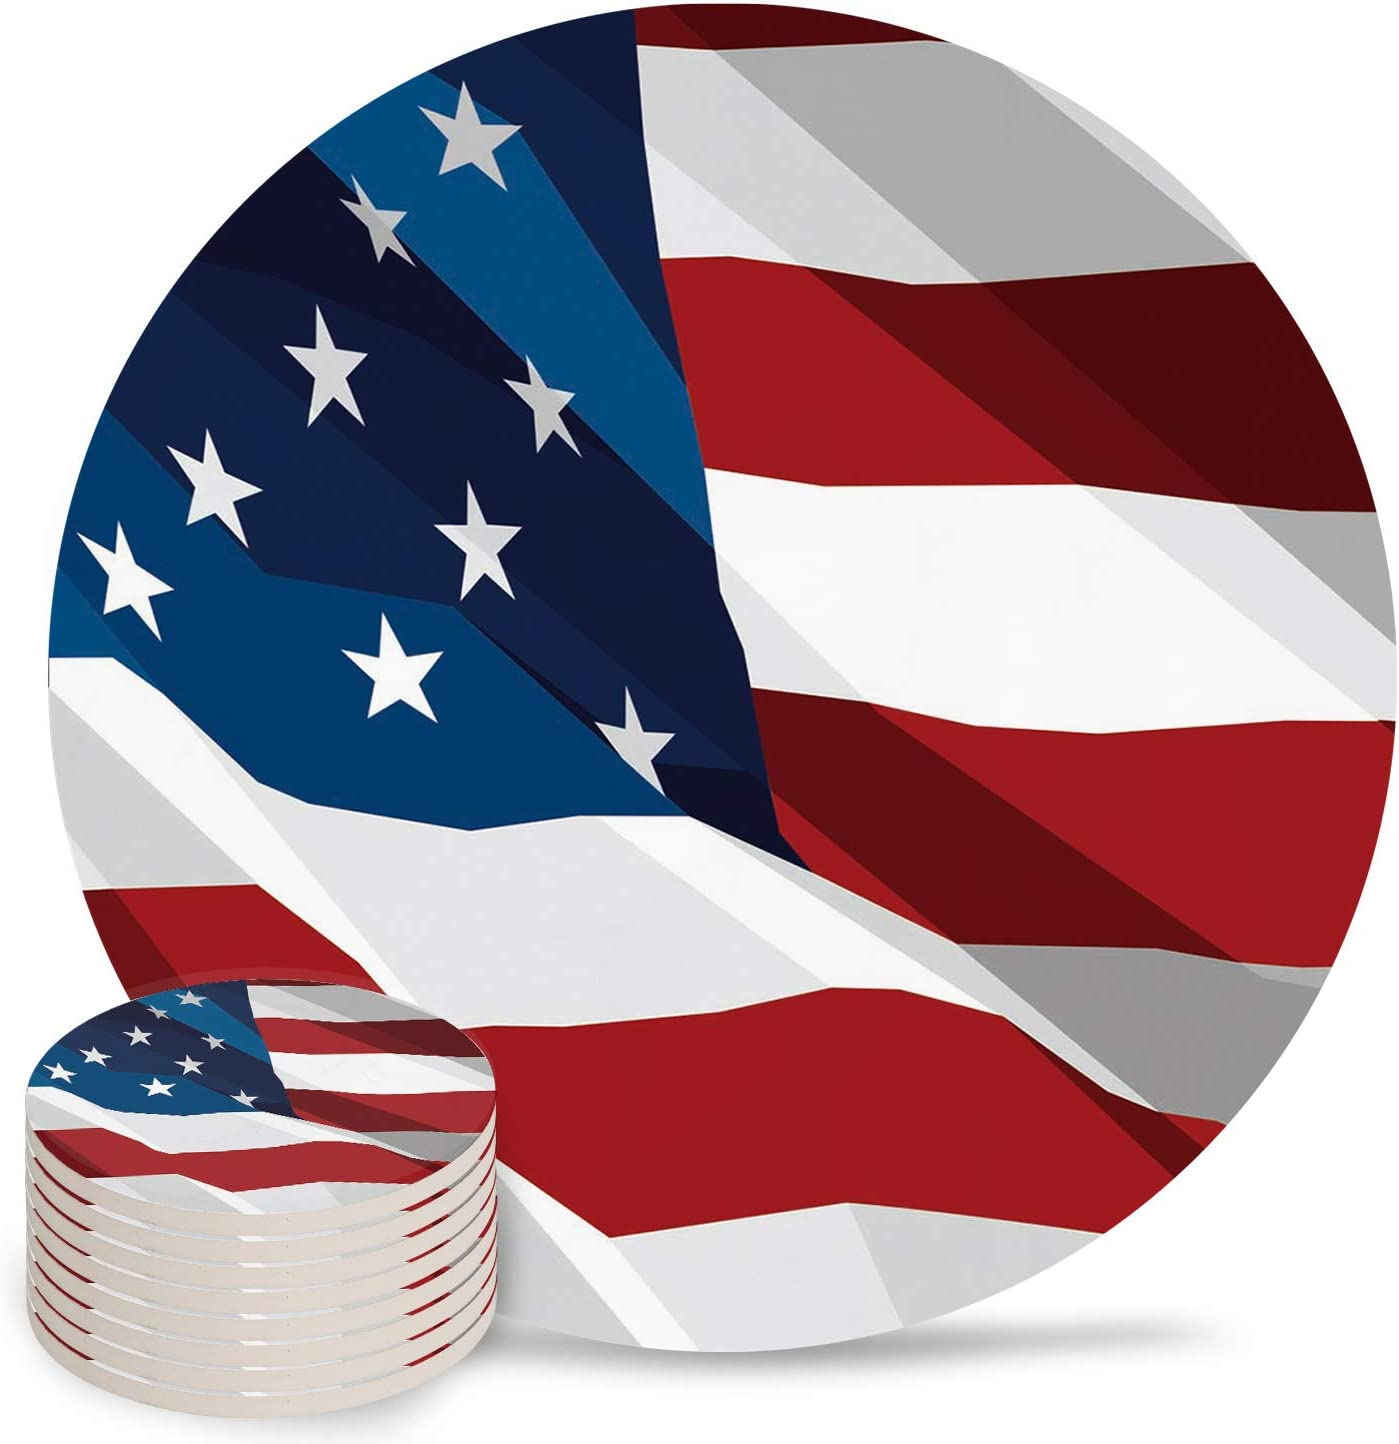 Independence Day Coasters for OFFer Drinks Flag American Super beauty product restock quality top! Cer Absorbent